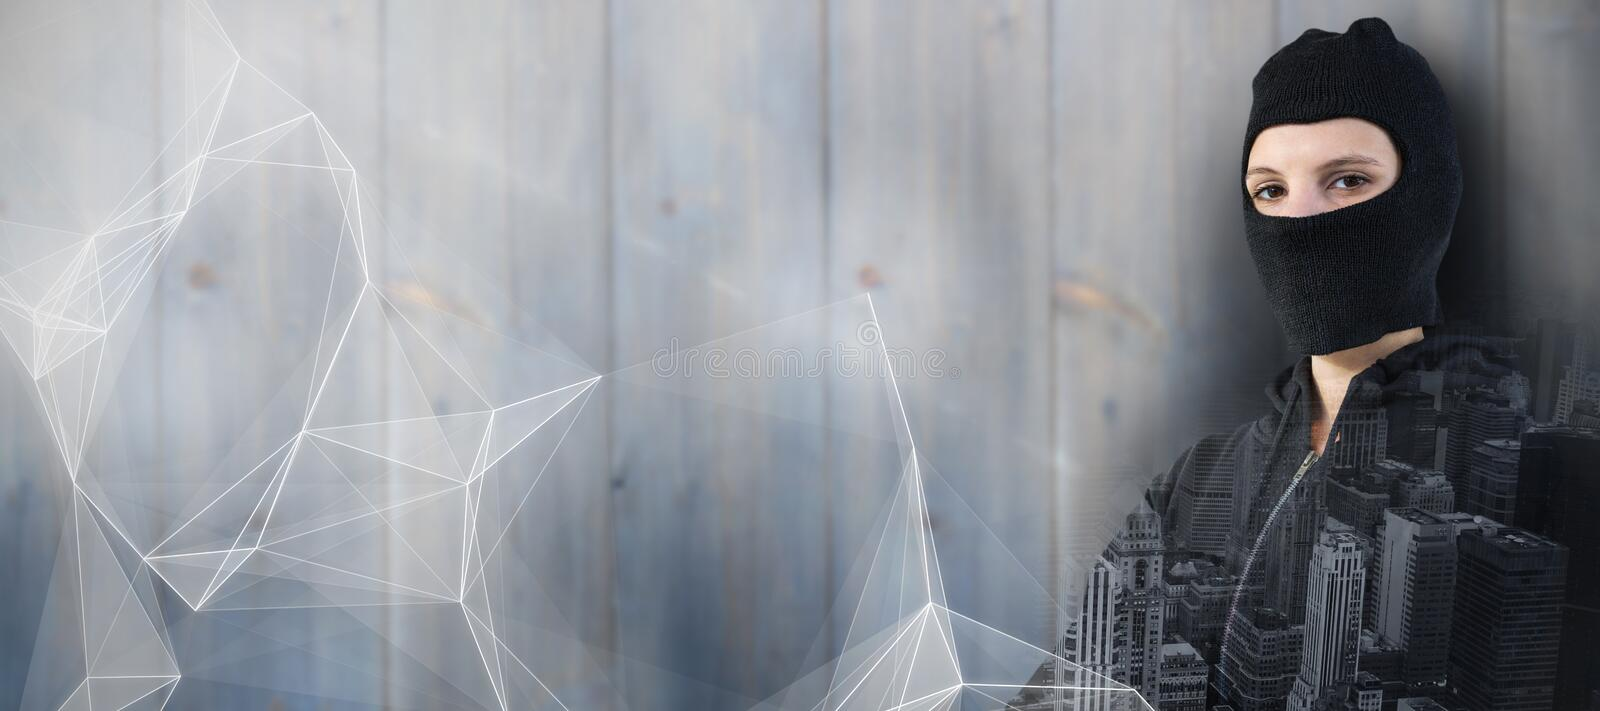 Composite image of portrait of female hacker standing with arms crossed stock photos